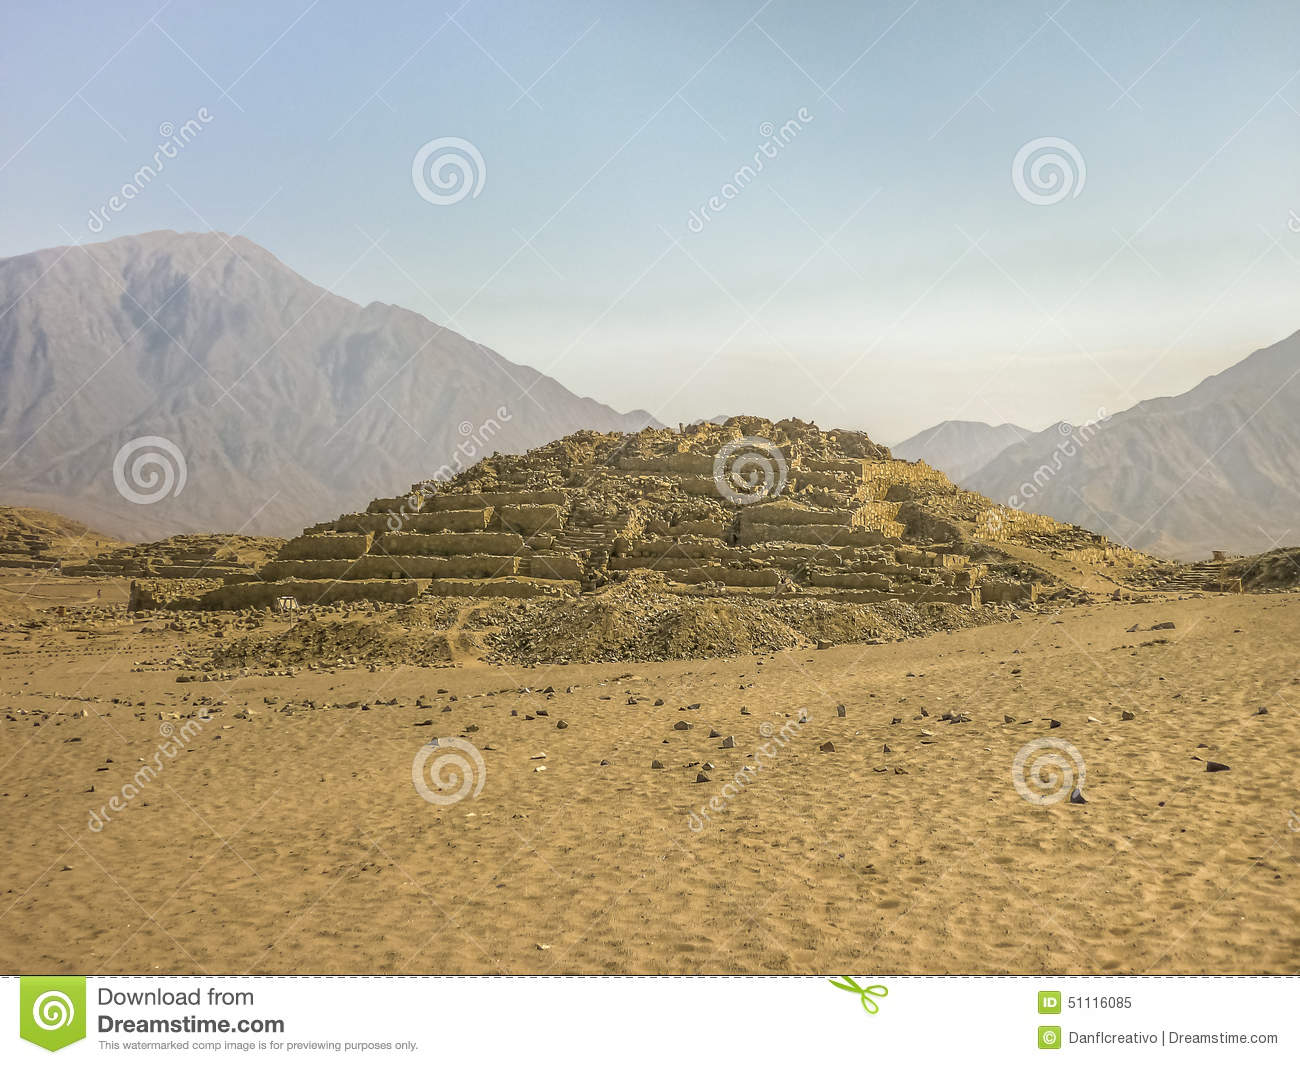 caral supe the oldest civilization in the The caral supe or norte chico civilization of south america  the caral supe or norte chico civilization of south america  represent some of the oldest examples .